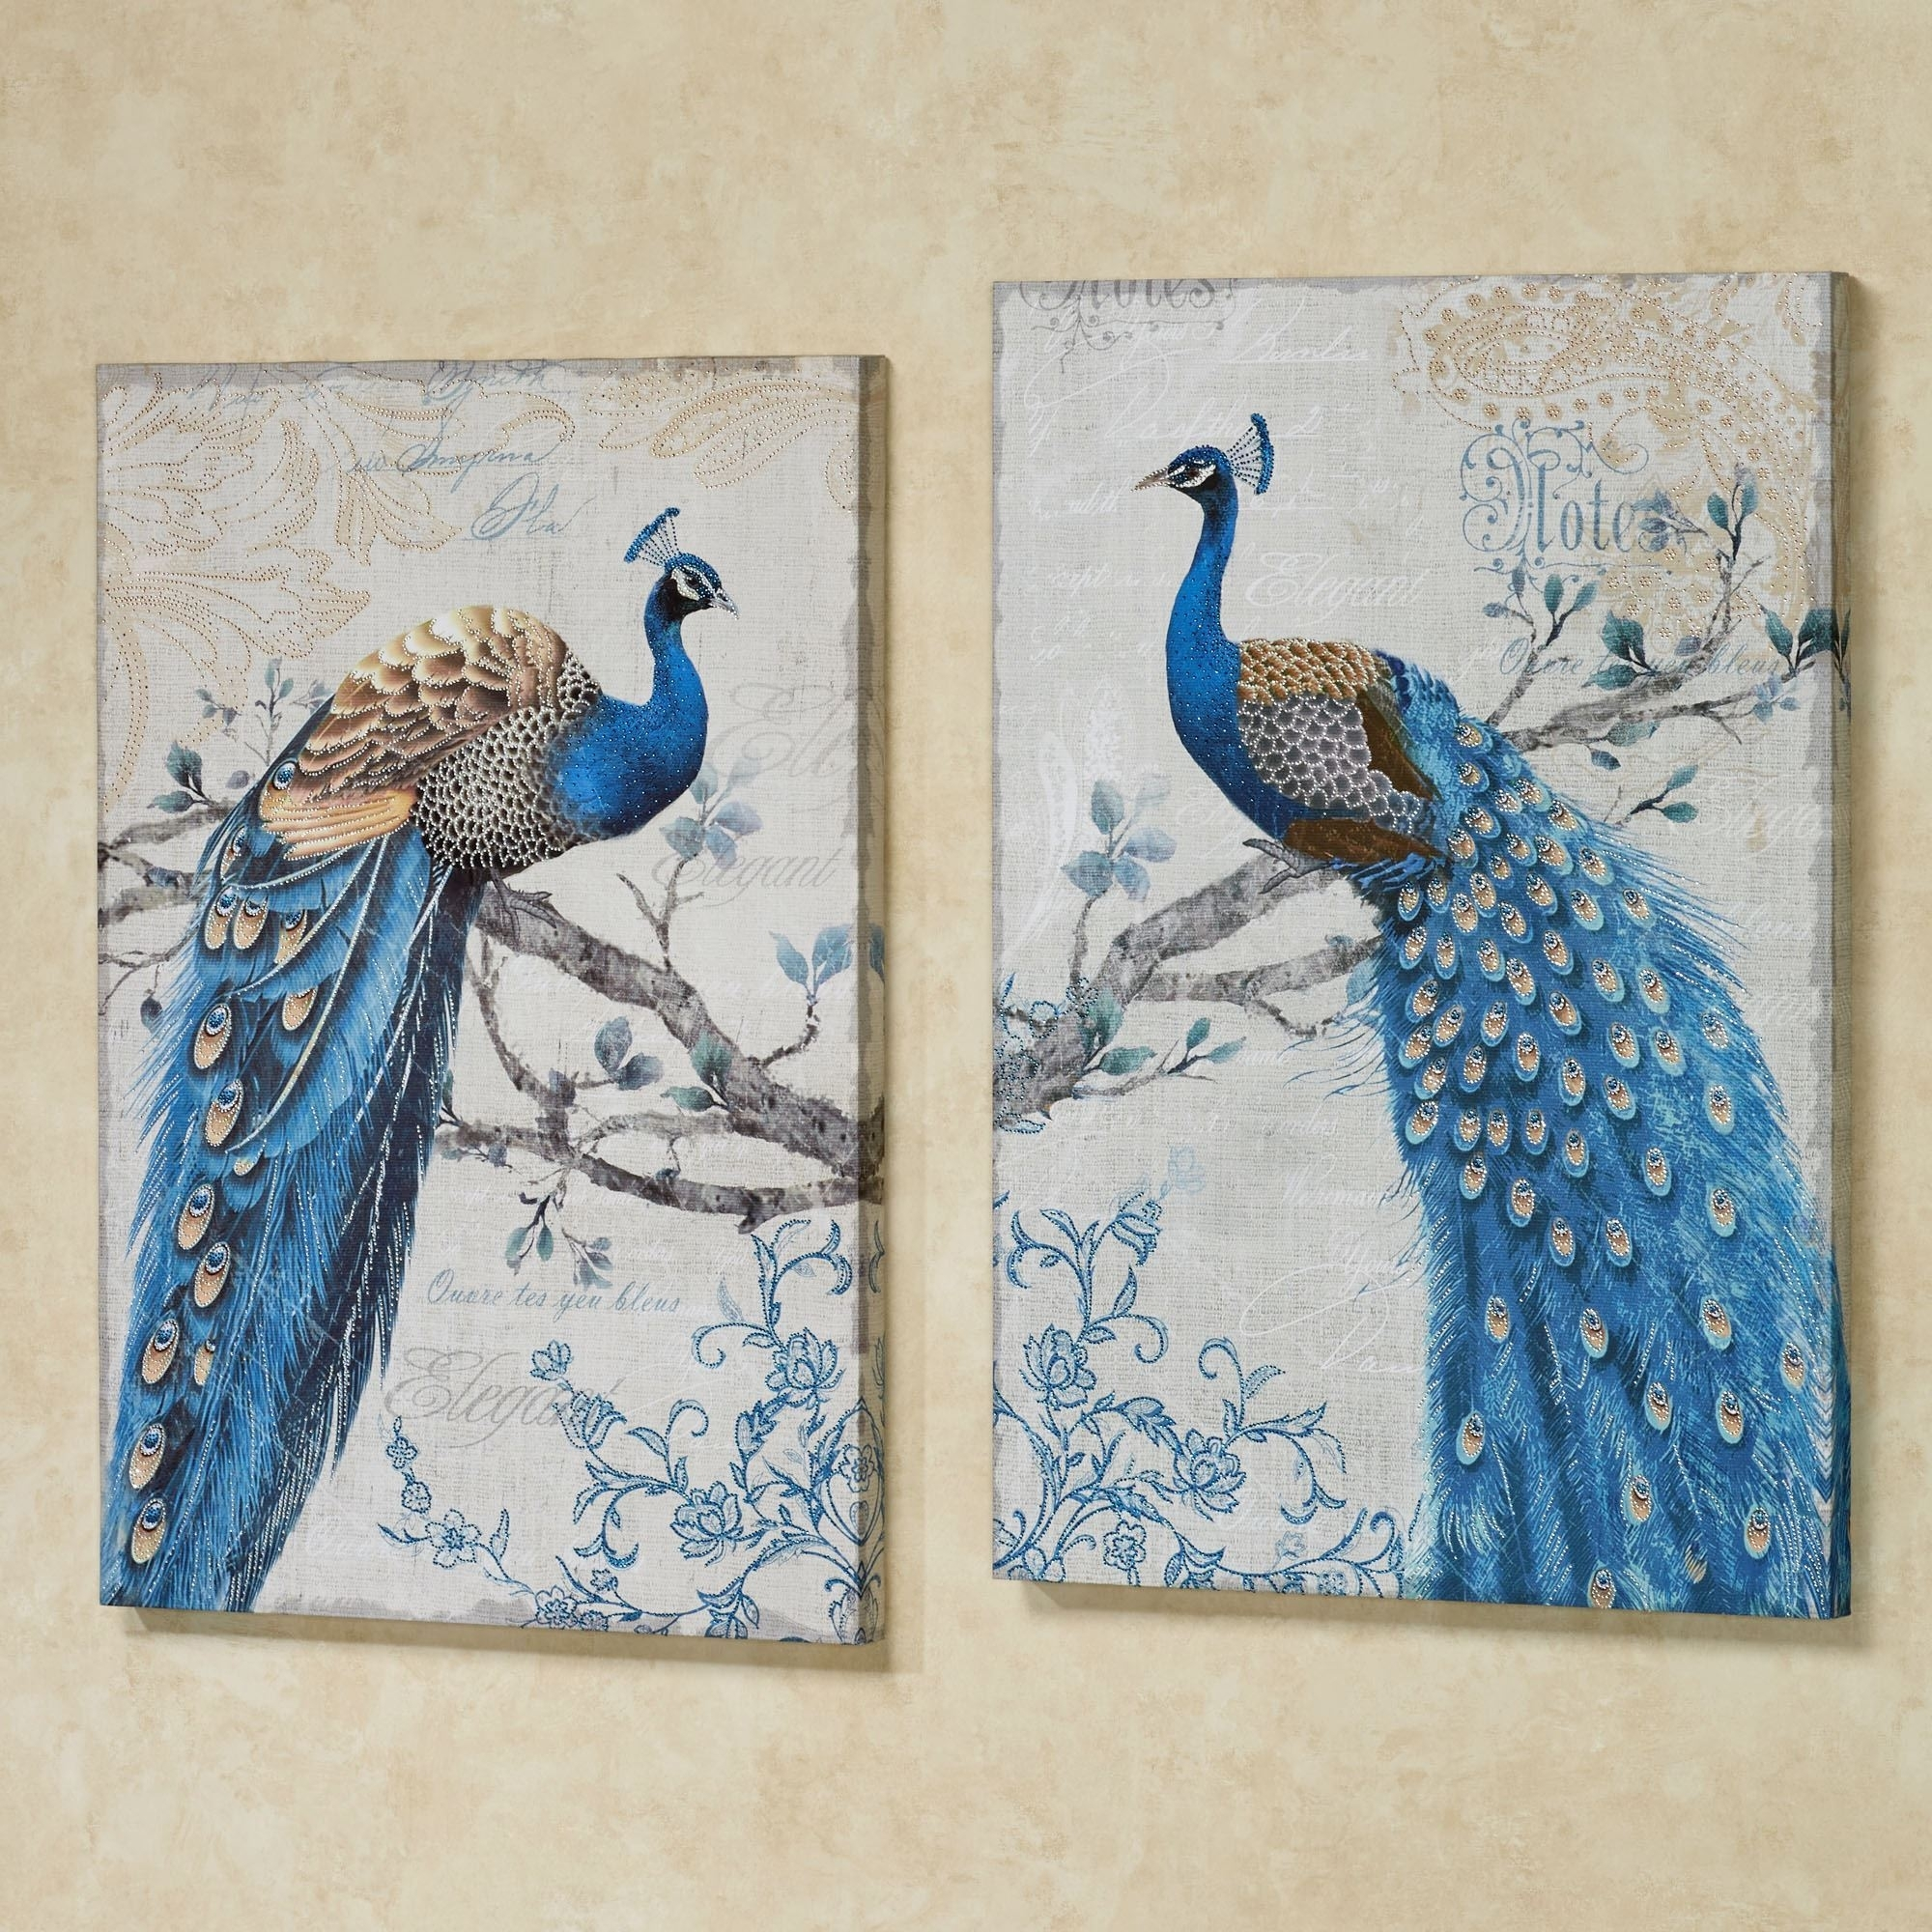 Magnificent Peacock Giclee Canvas Wall Art Set Within Most Current Peacock Wall Art (Gallery 1 of 15)